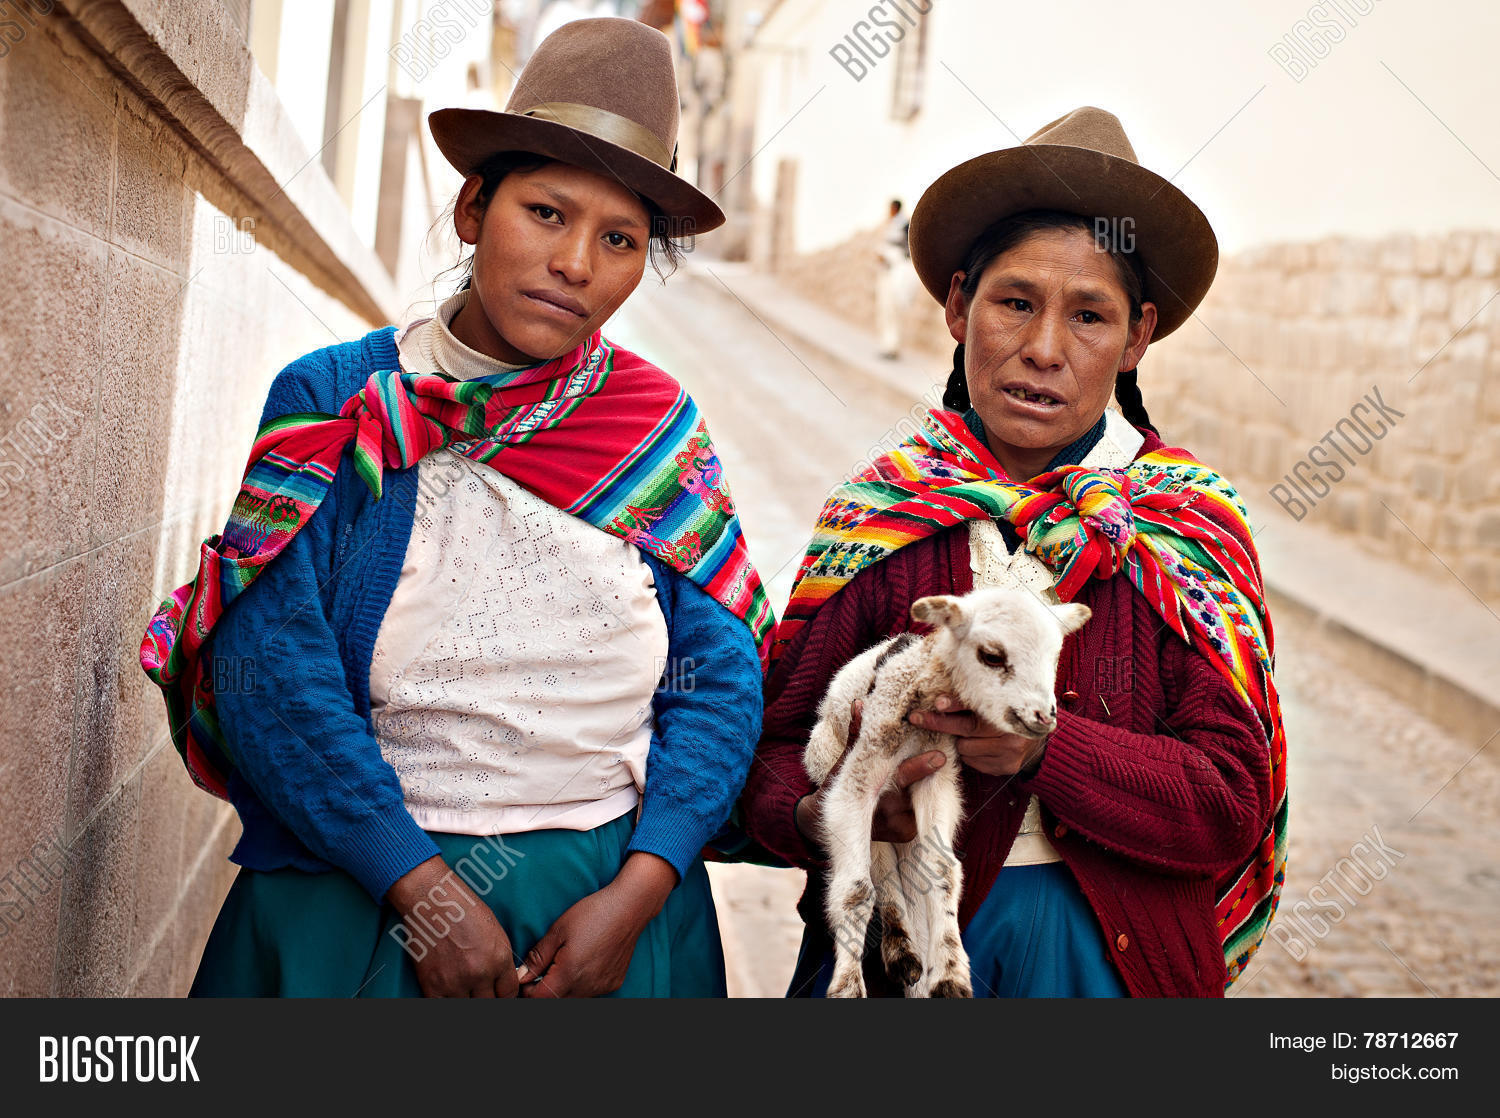 Peruvian Women Image Photo Free Trial Bigstock